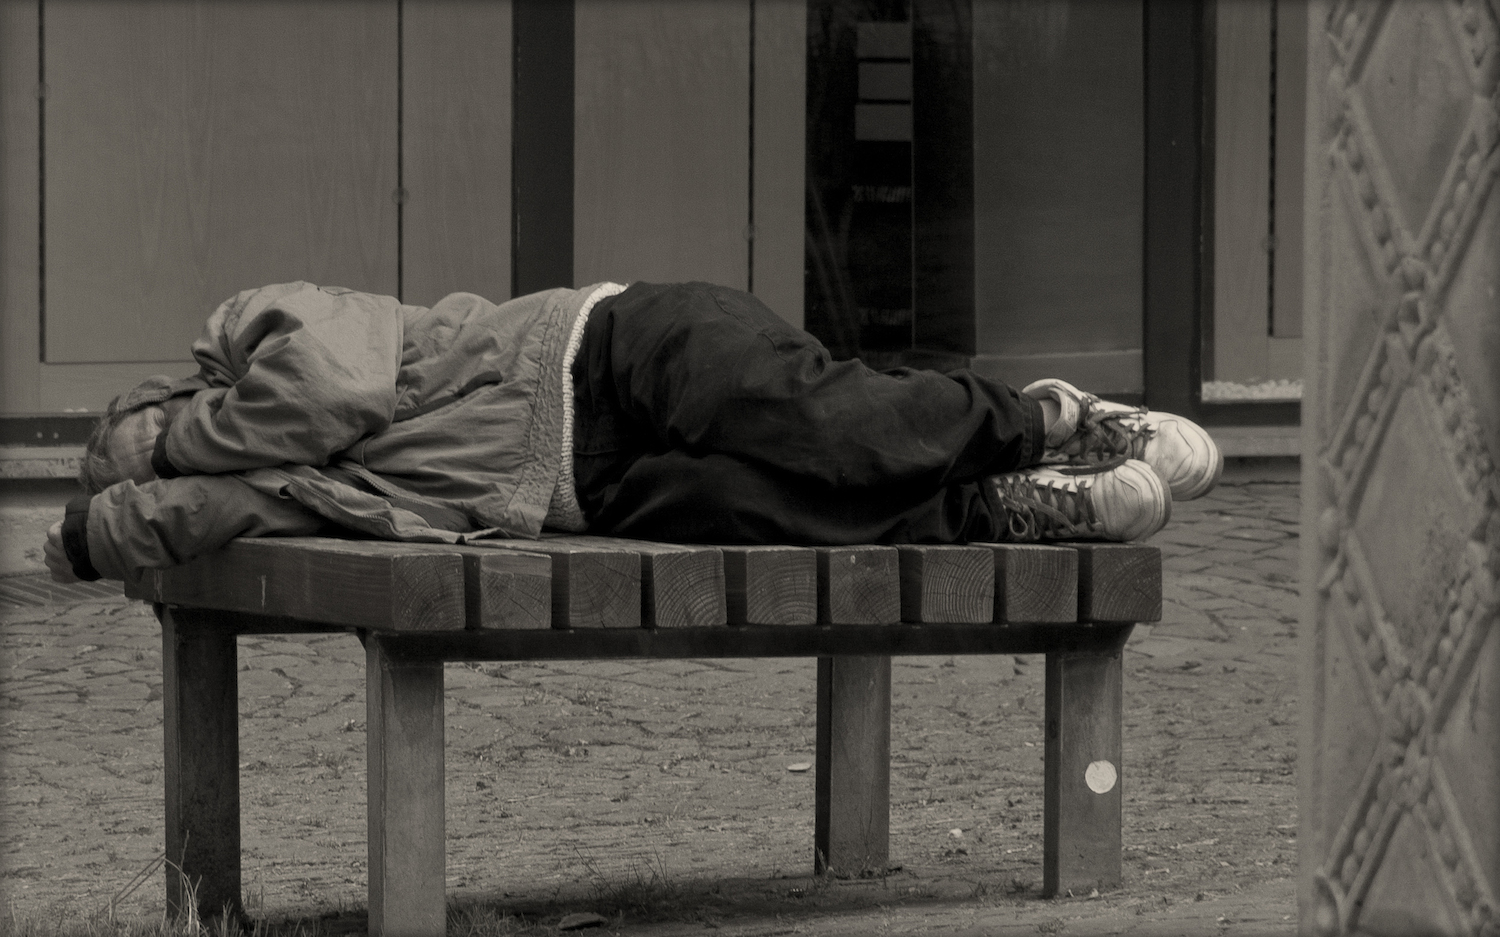 homelessness and spare change Homelessness is an epidemic in our society, and contrary to popular belief,  they sat their begging you for your spare change, or some food to keep them from starving that night  microsoft word - persuasive speech outlinedoc author: lori bergstrom created date.